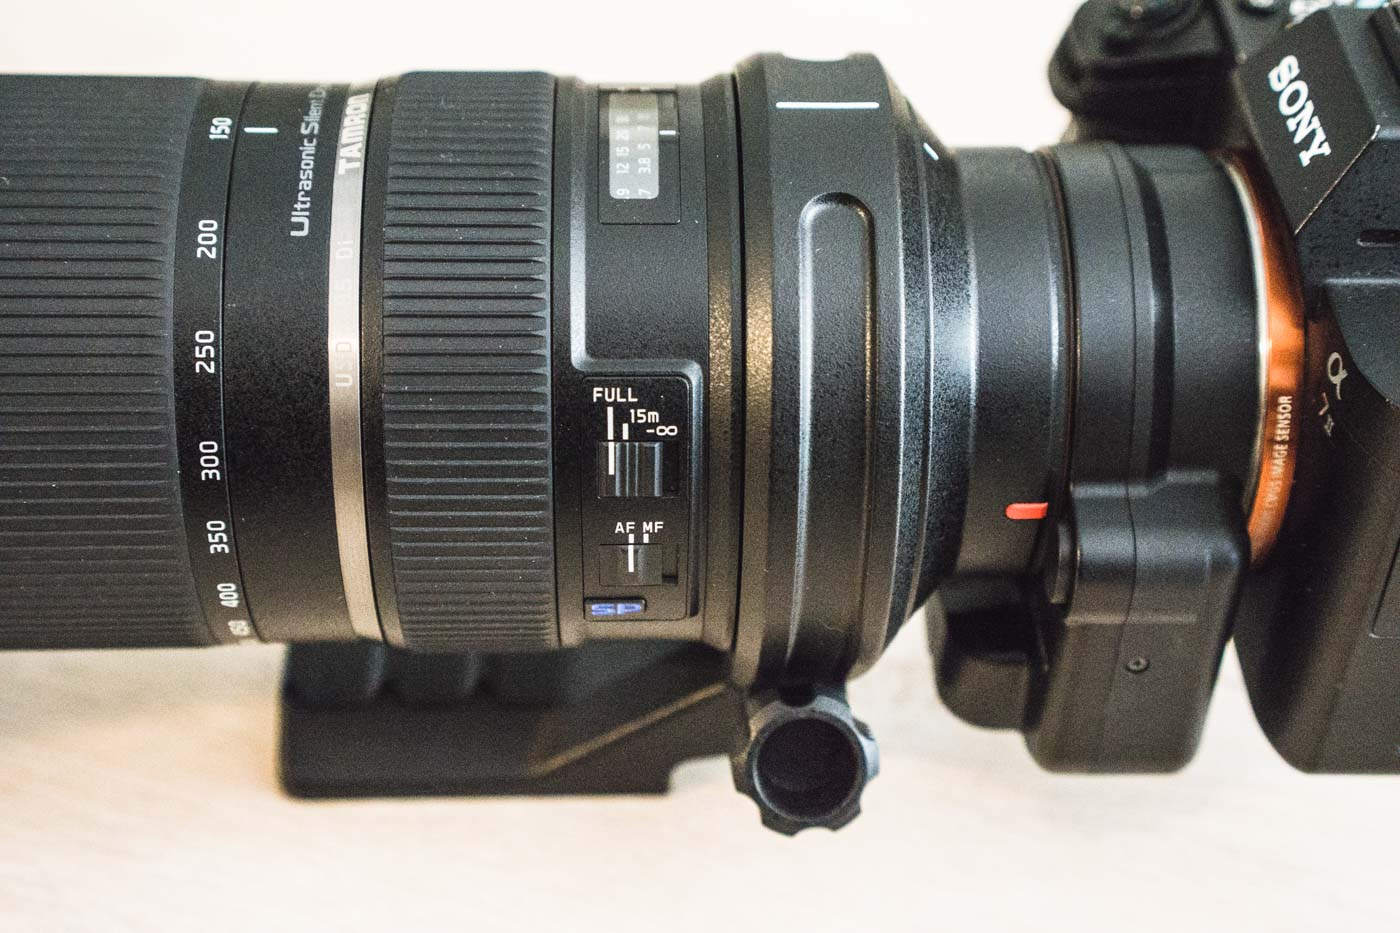 Tamron 150 600mm F 5 63 Lens Review The Photon Collective Sp Di Vc Usd G2 For Canon Ef F5 On Sony